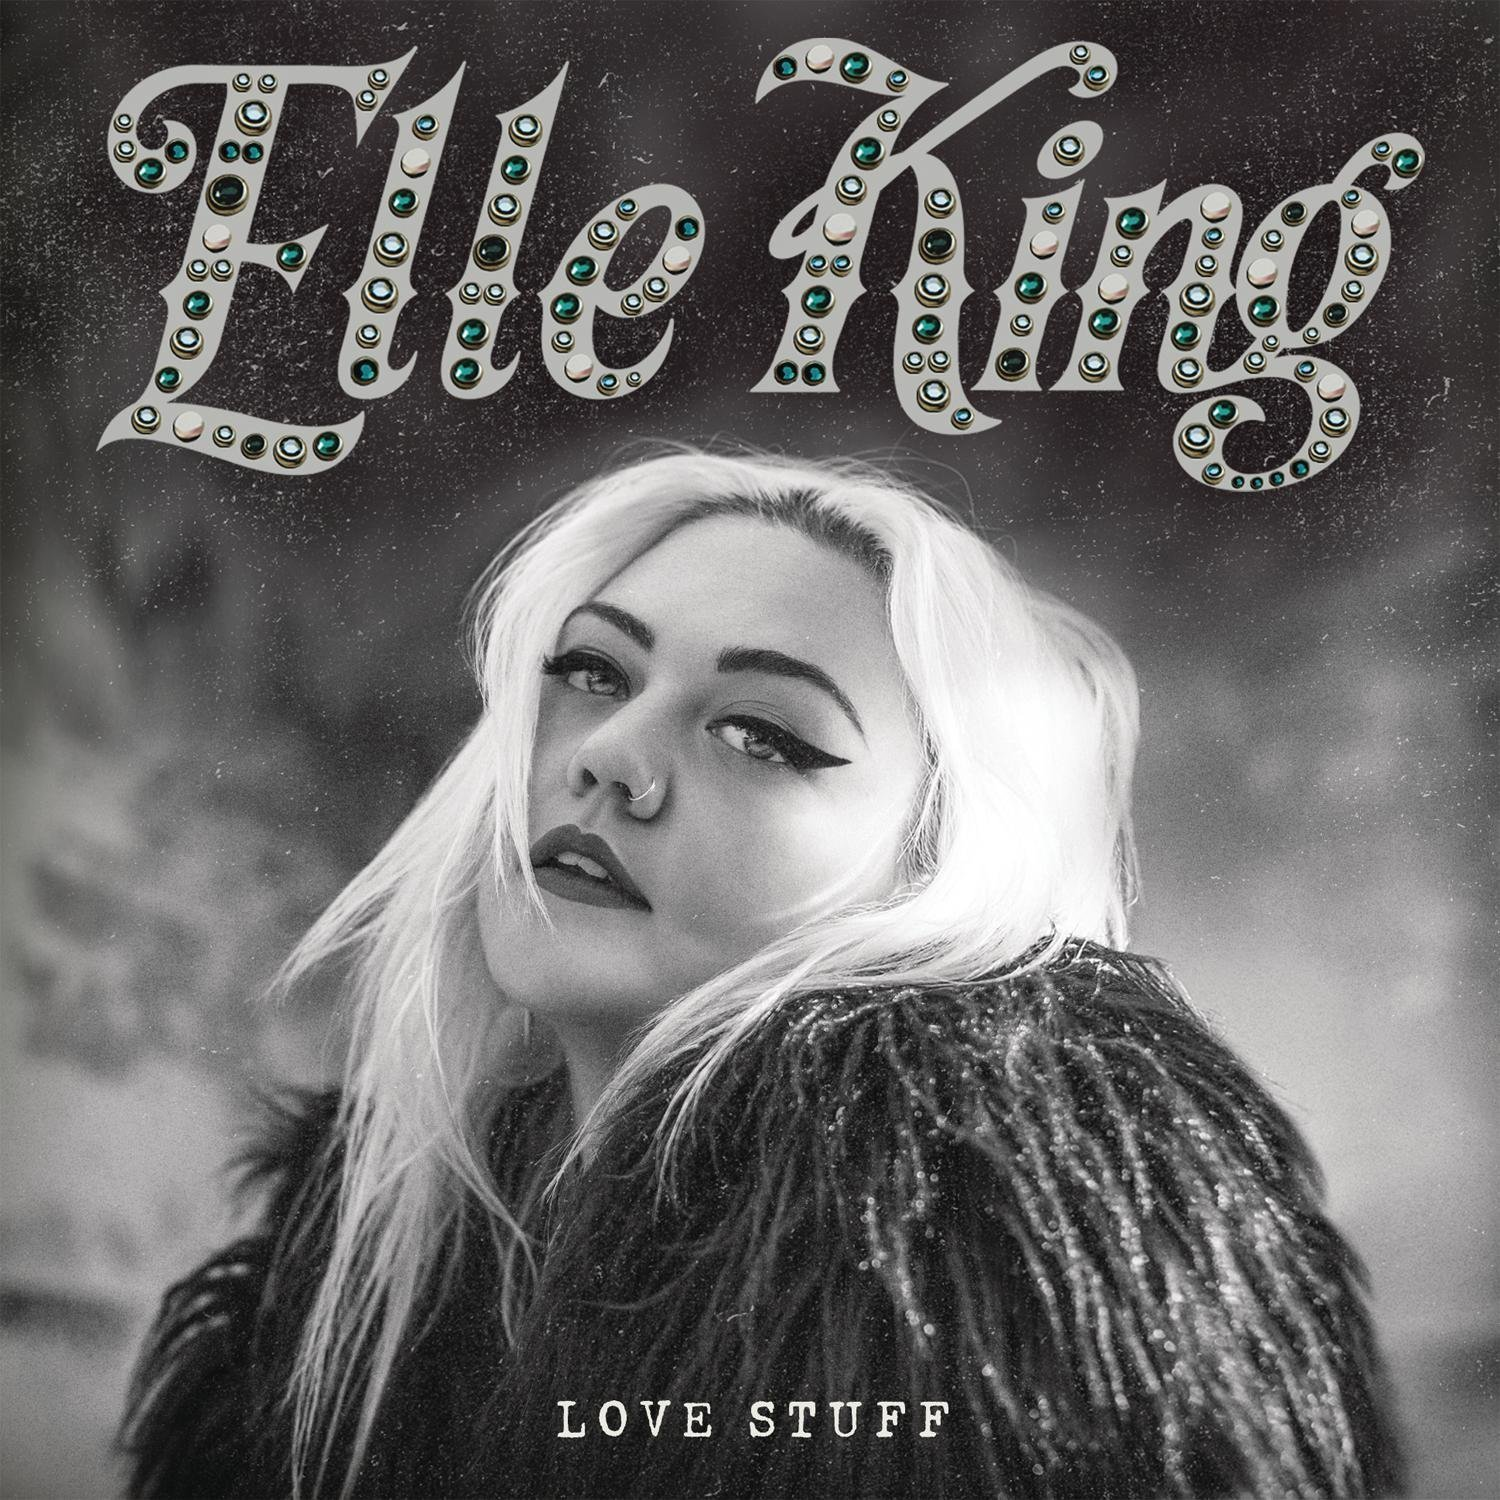 「Ex's and Oh's」収録アルバム『LOVE STUFF』/Elle King